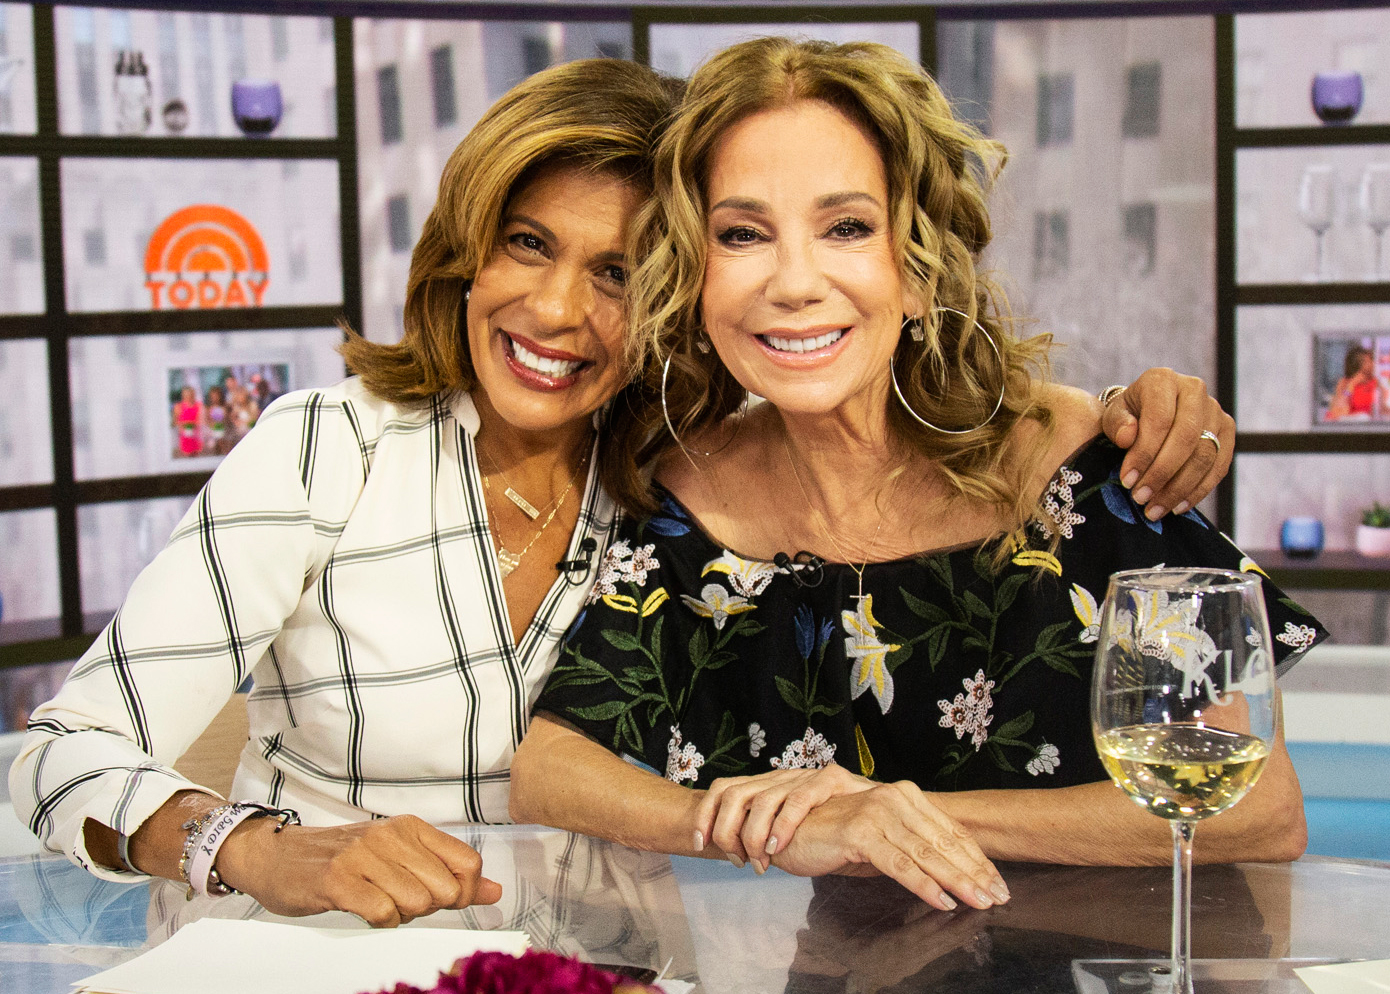 """Hoda-Kotb-and-Kathie-Lee-Gifford - """"Kathie is my dearest friend. She is fearless, determined and just plain fun! Saying I will miss her is an understatement, but all of us here at Today have learned so much from being around her that her legacy will be around for many, many years."""""""